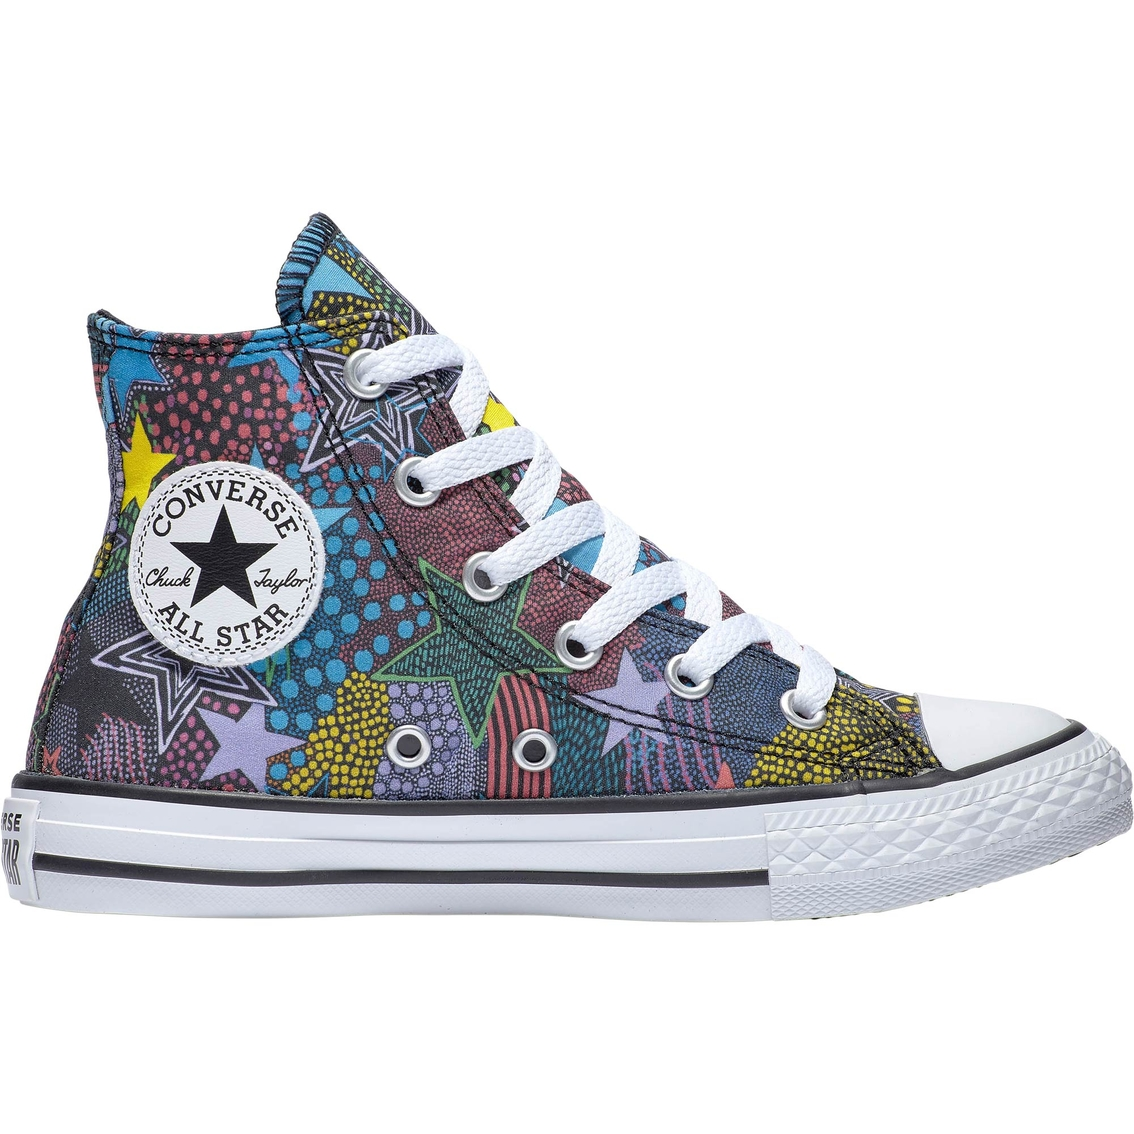 best authentic size 7 look good shoes sale Converse Girls Chuck Taylor All Star High Top Sneakers ...